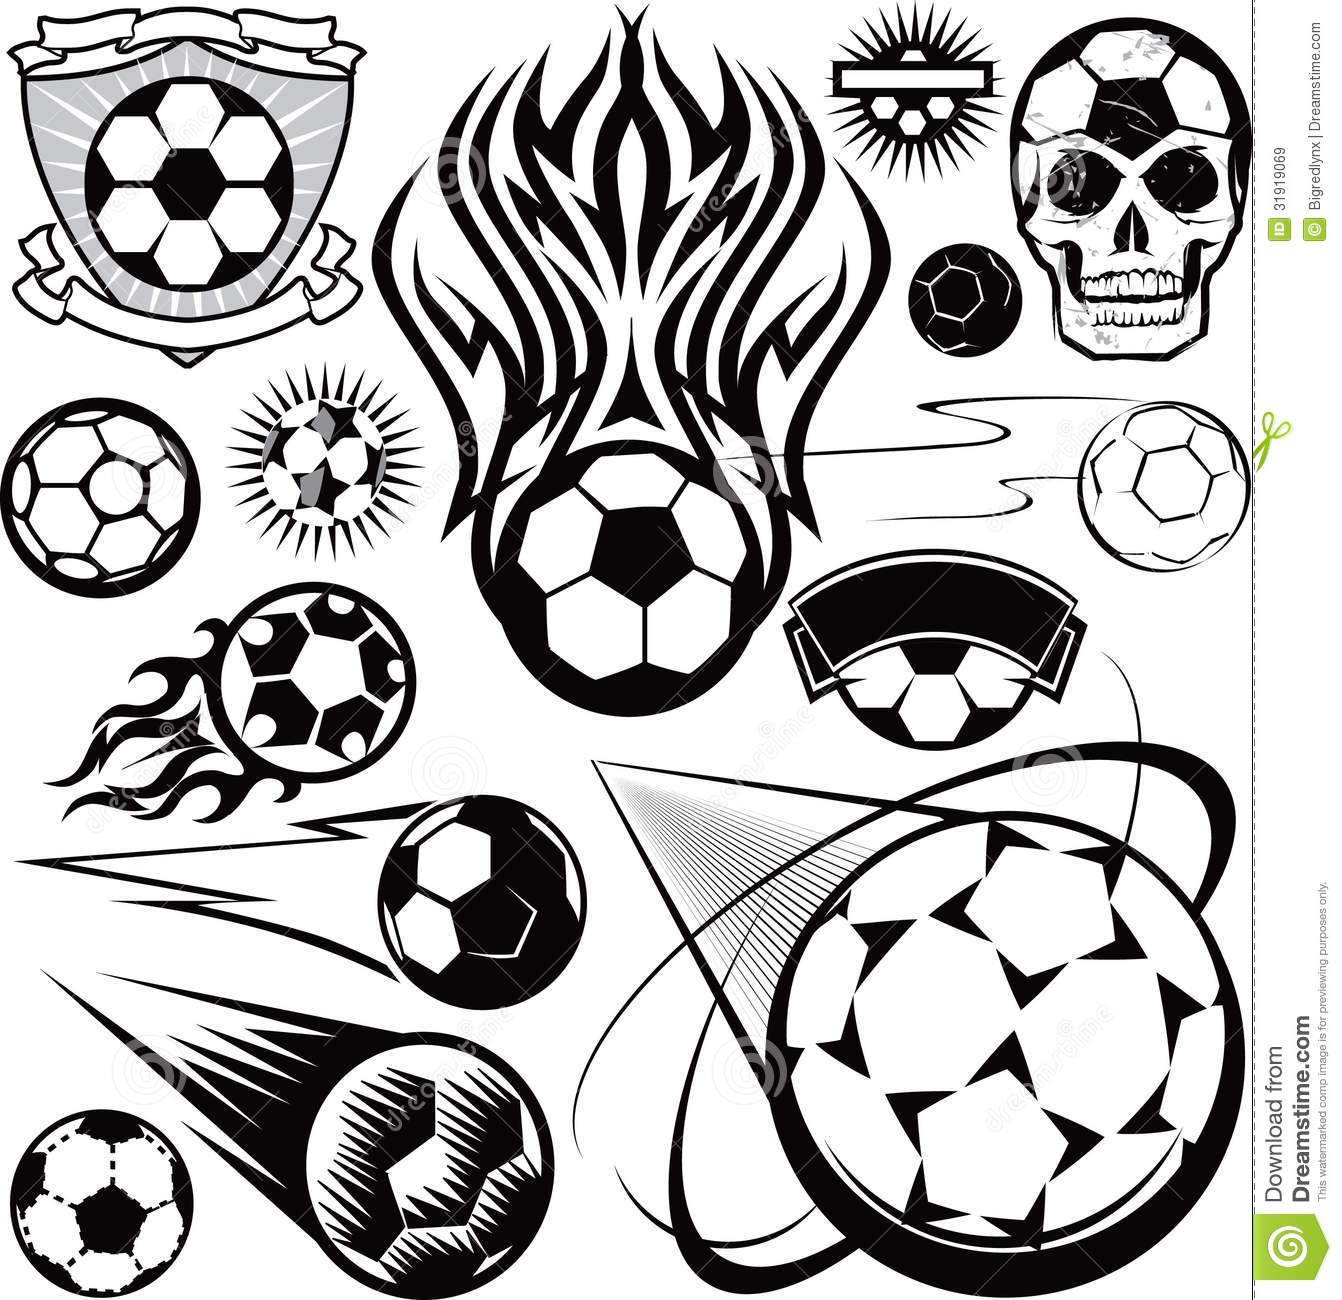 Soccer Ball Collection stock image. Image of comic, shield ...